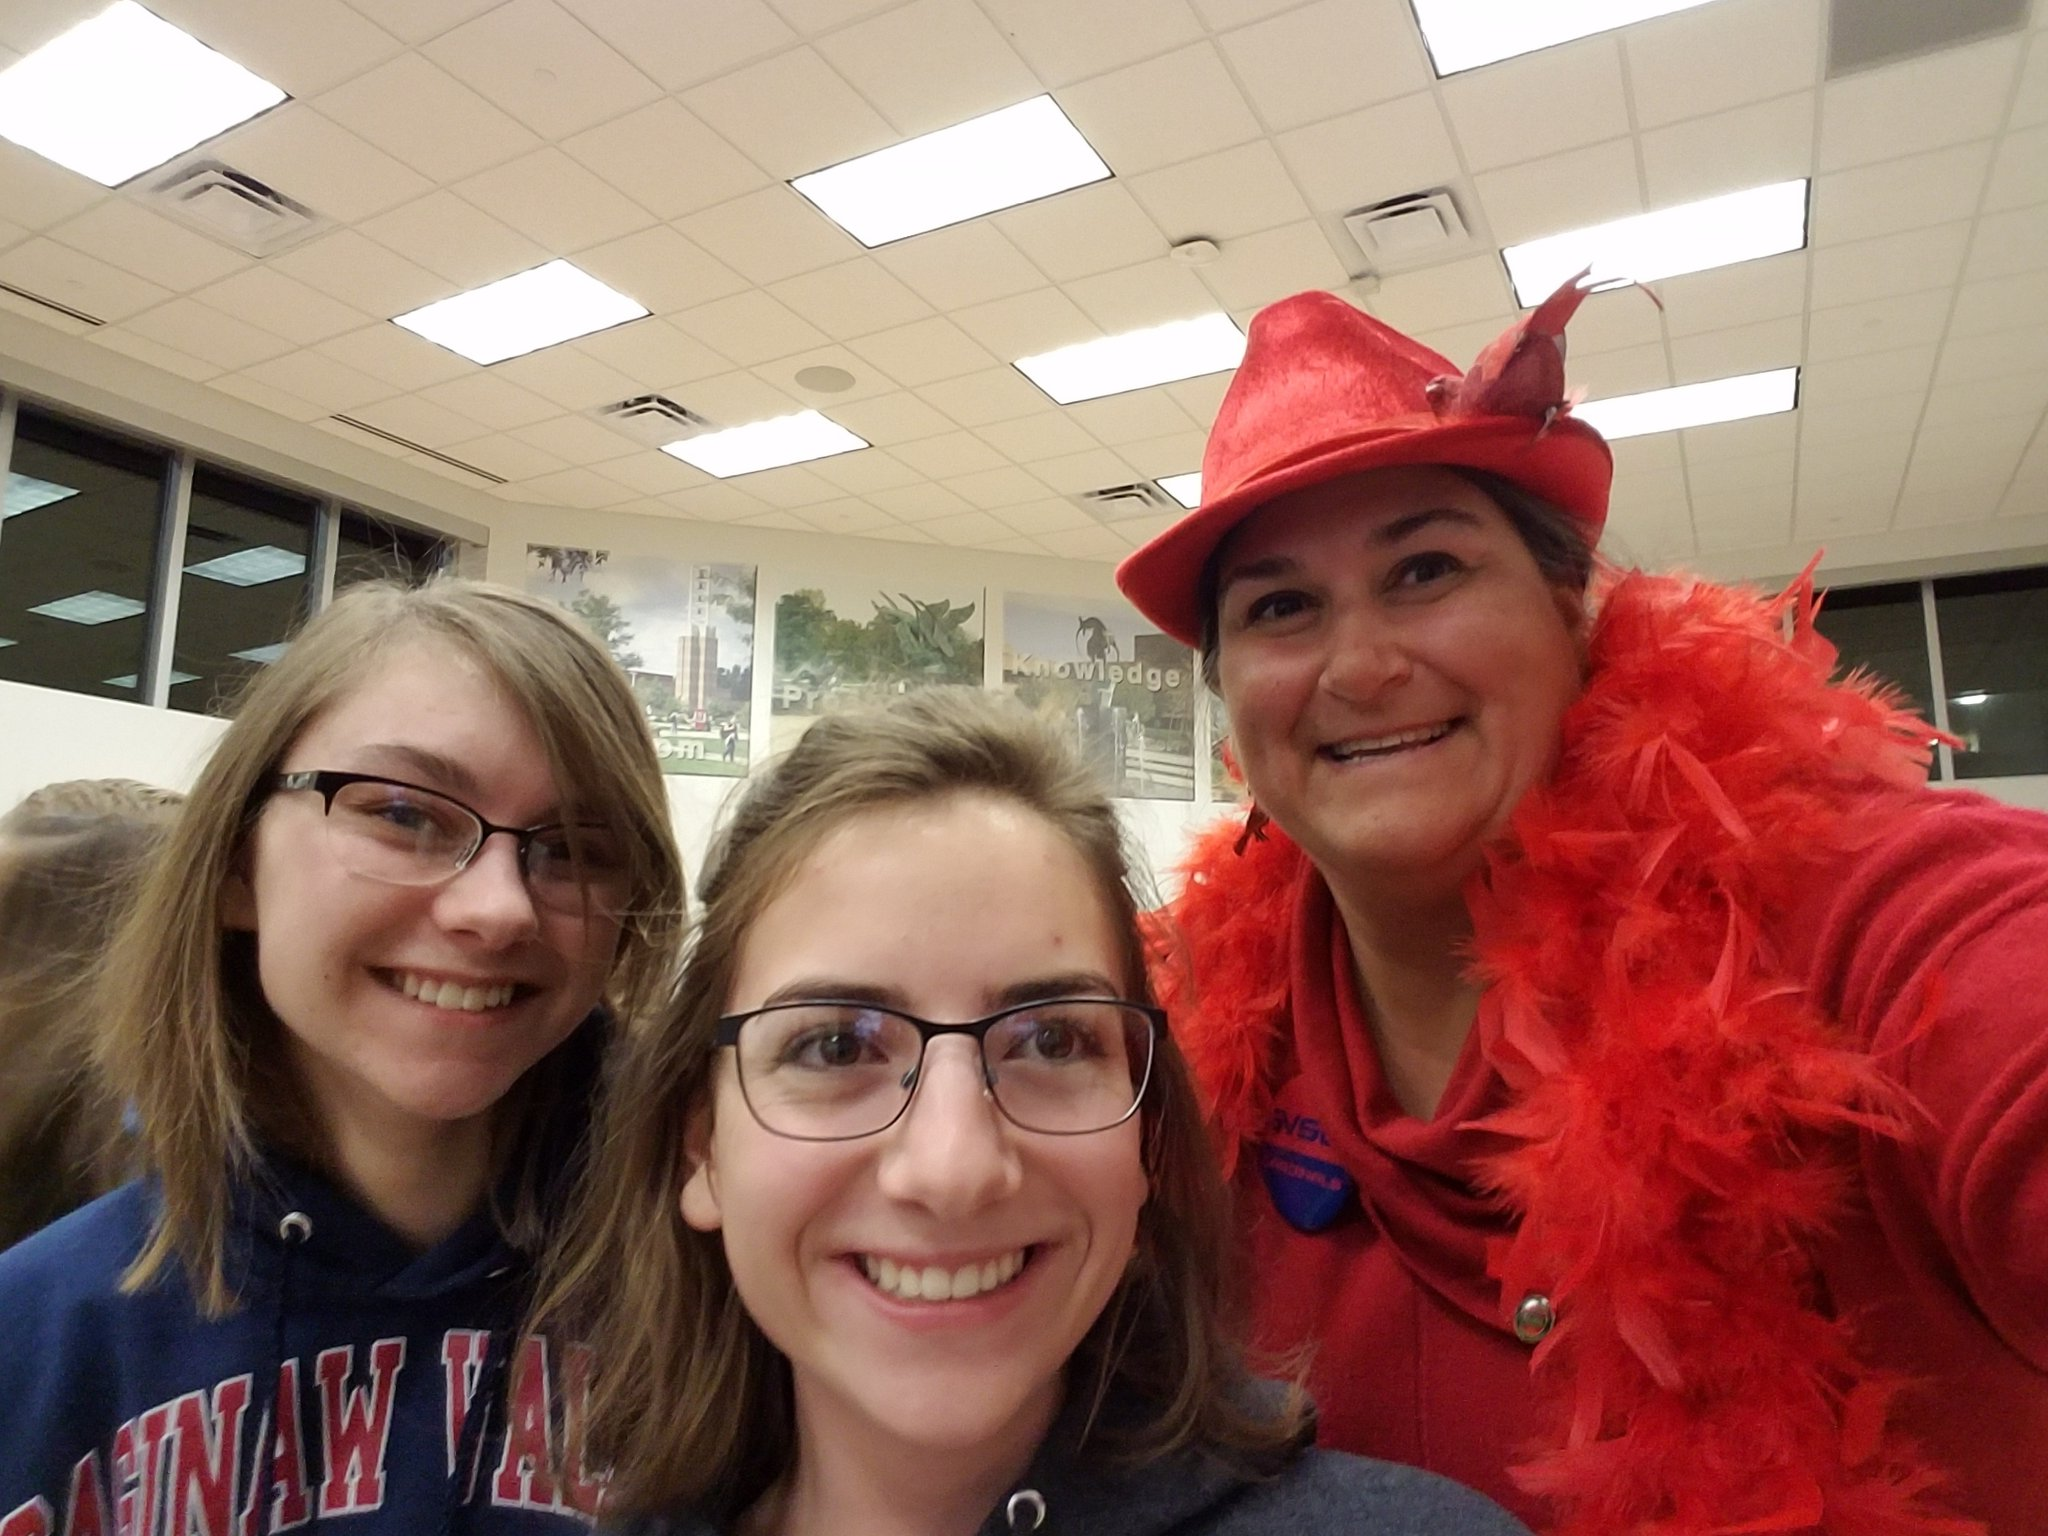 Showing our red pride at I ♡SV week!  #redpride #svsu #wecardinal #i♡sv https://t.co/oHJmz4Nw7Y